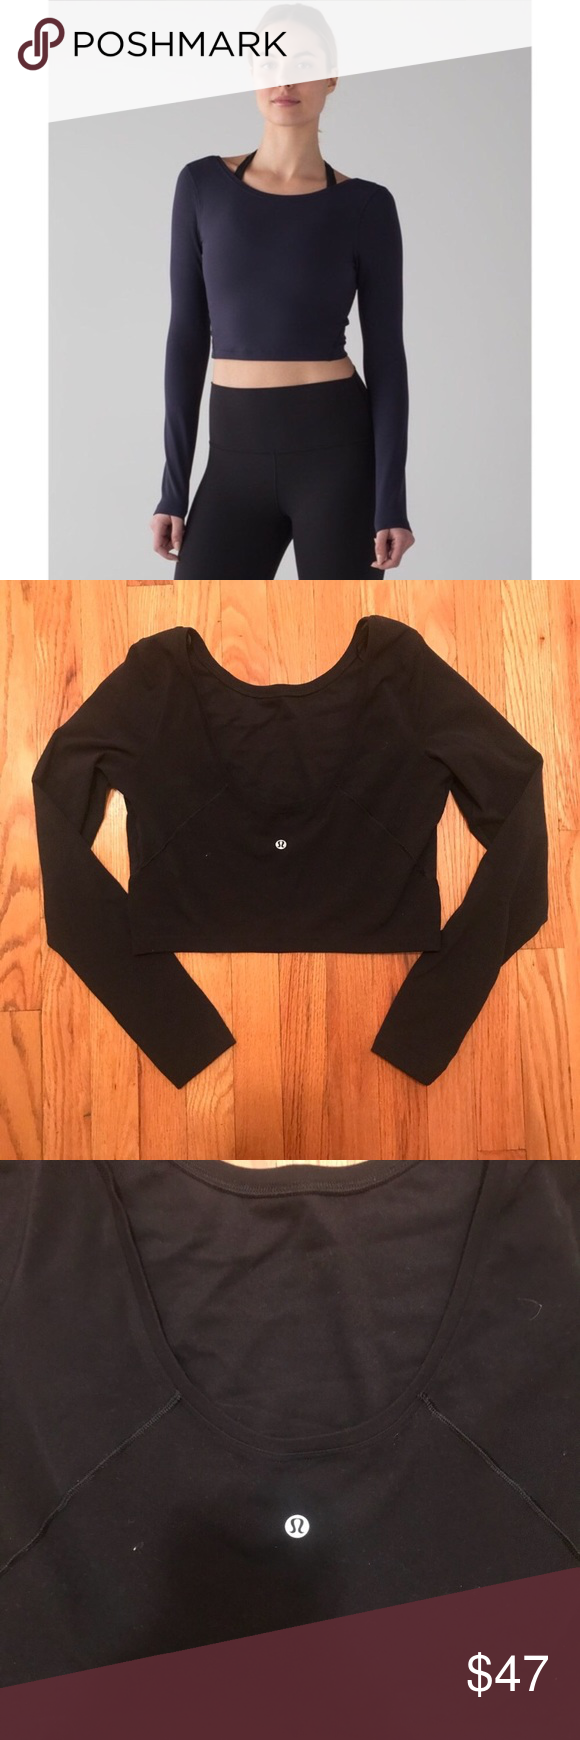 a3cfa766567 Lululemon Arise Crop Long sleeve Black size 8 Lululemon long sleeve crop  top. Super soft material and in excellent condition. lululemon athletica  Tops Crop ...